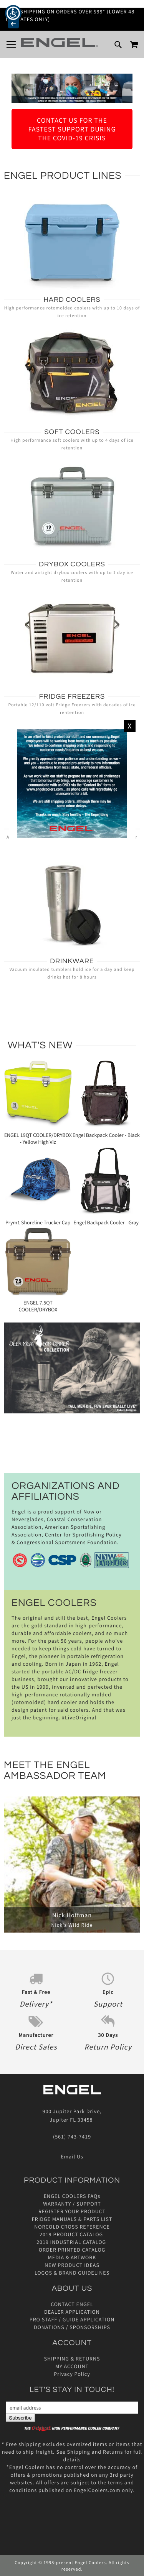 Engel Coolers Coupon